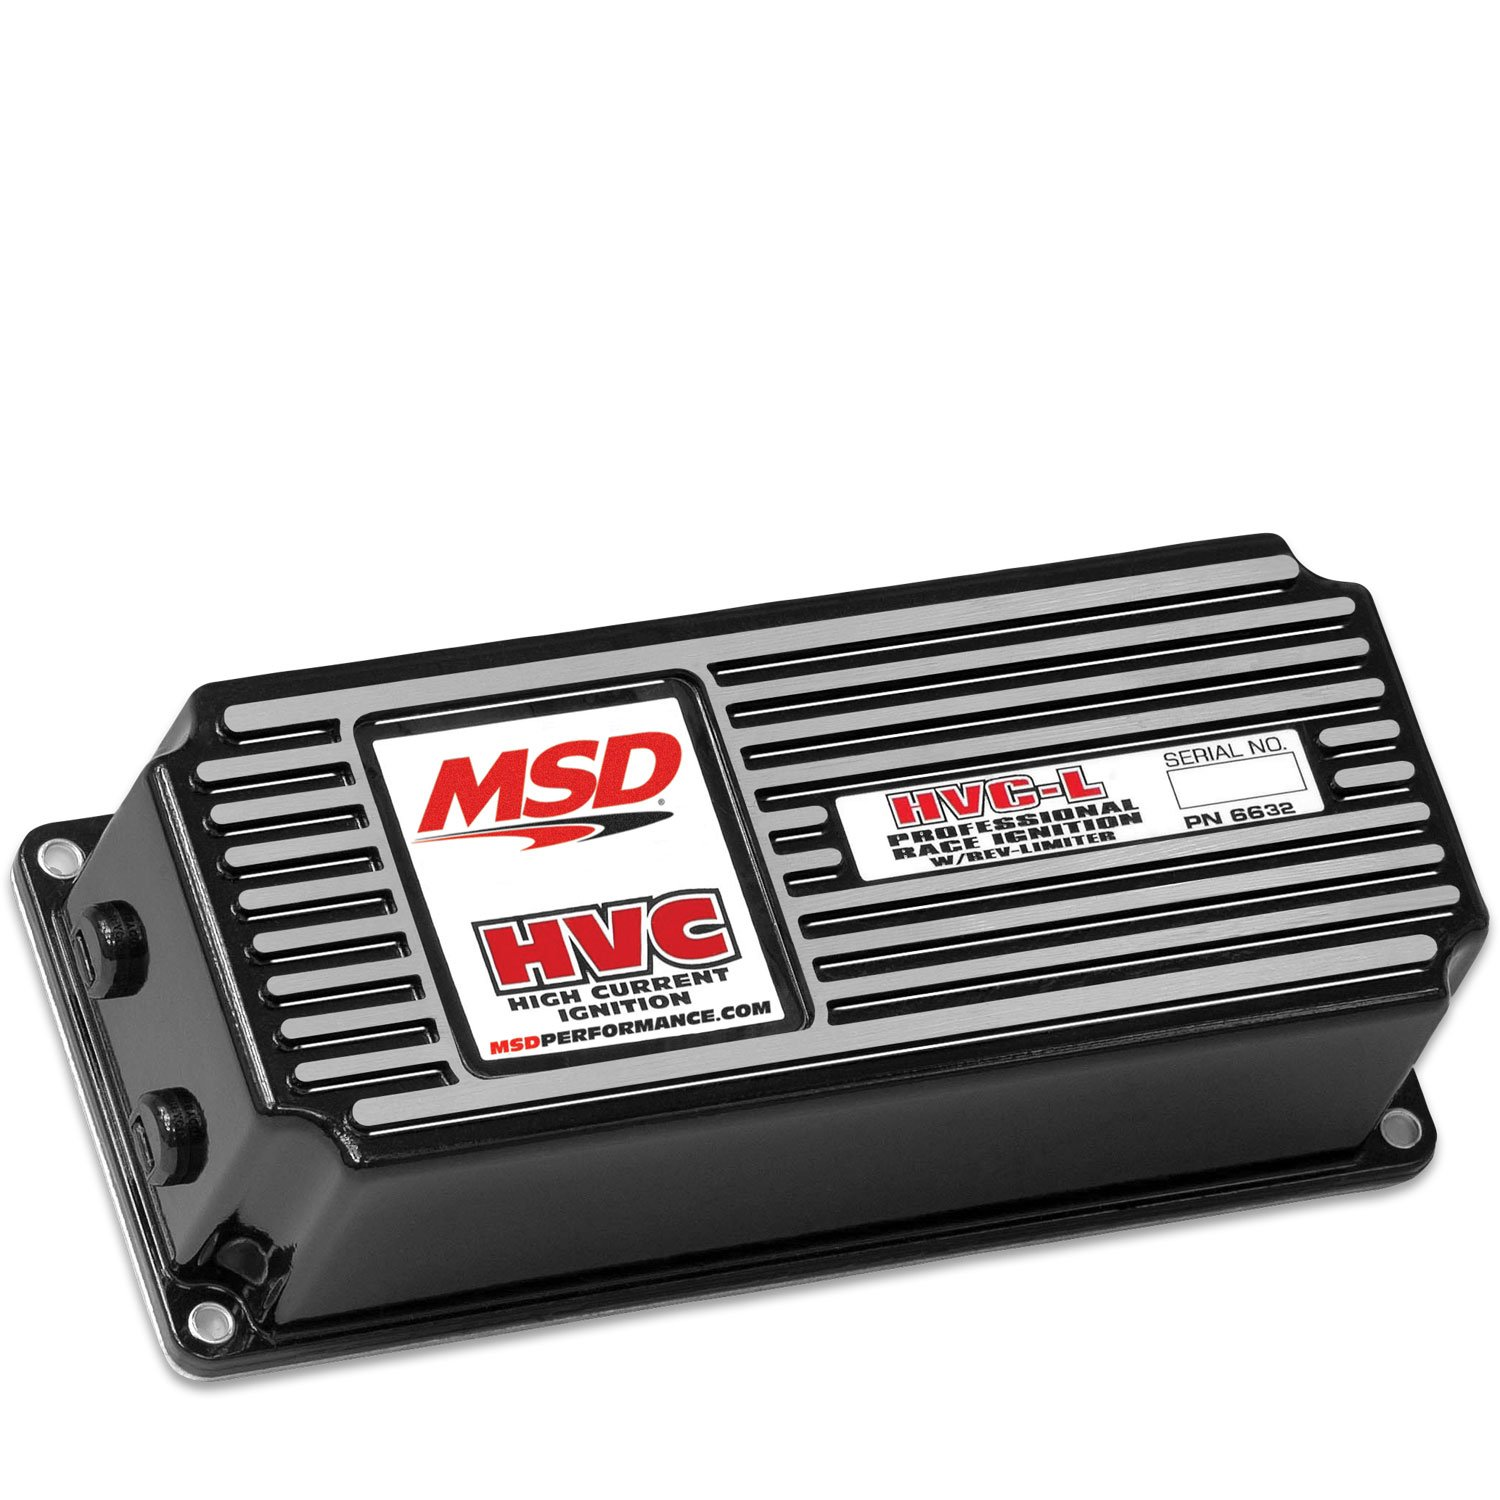 6632 - MSD 6 HVC-L with Soft Touch Rev Limiter Image